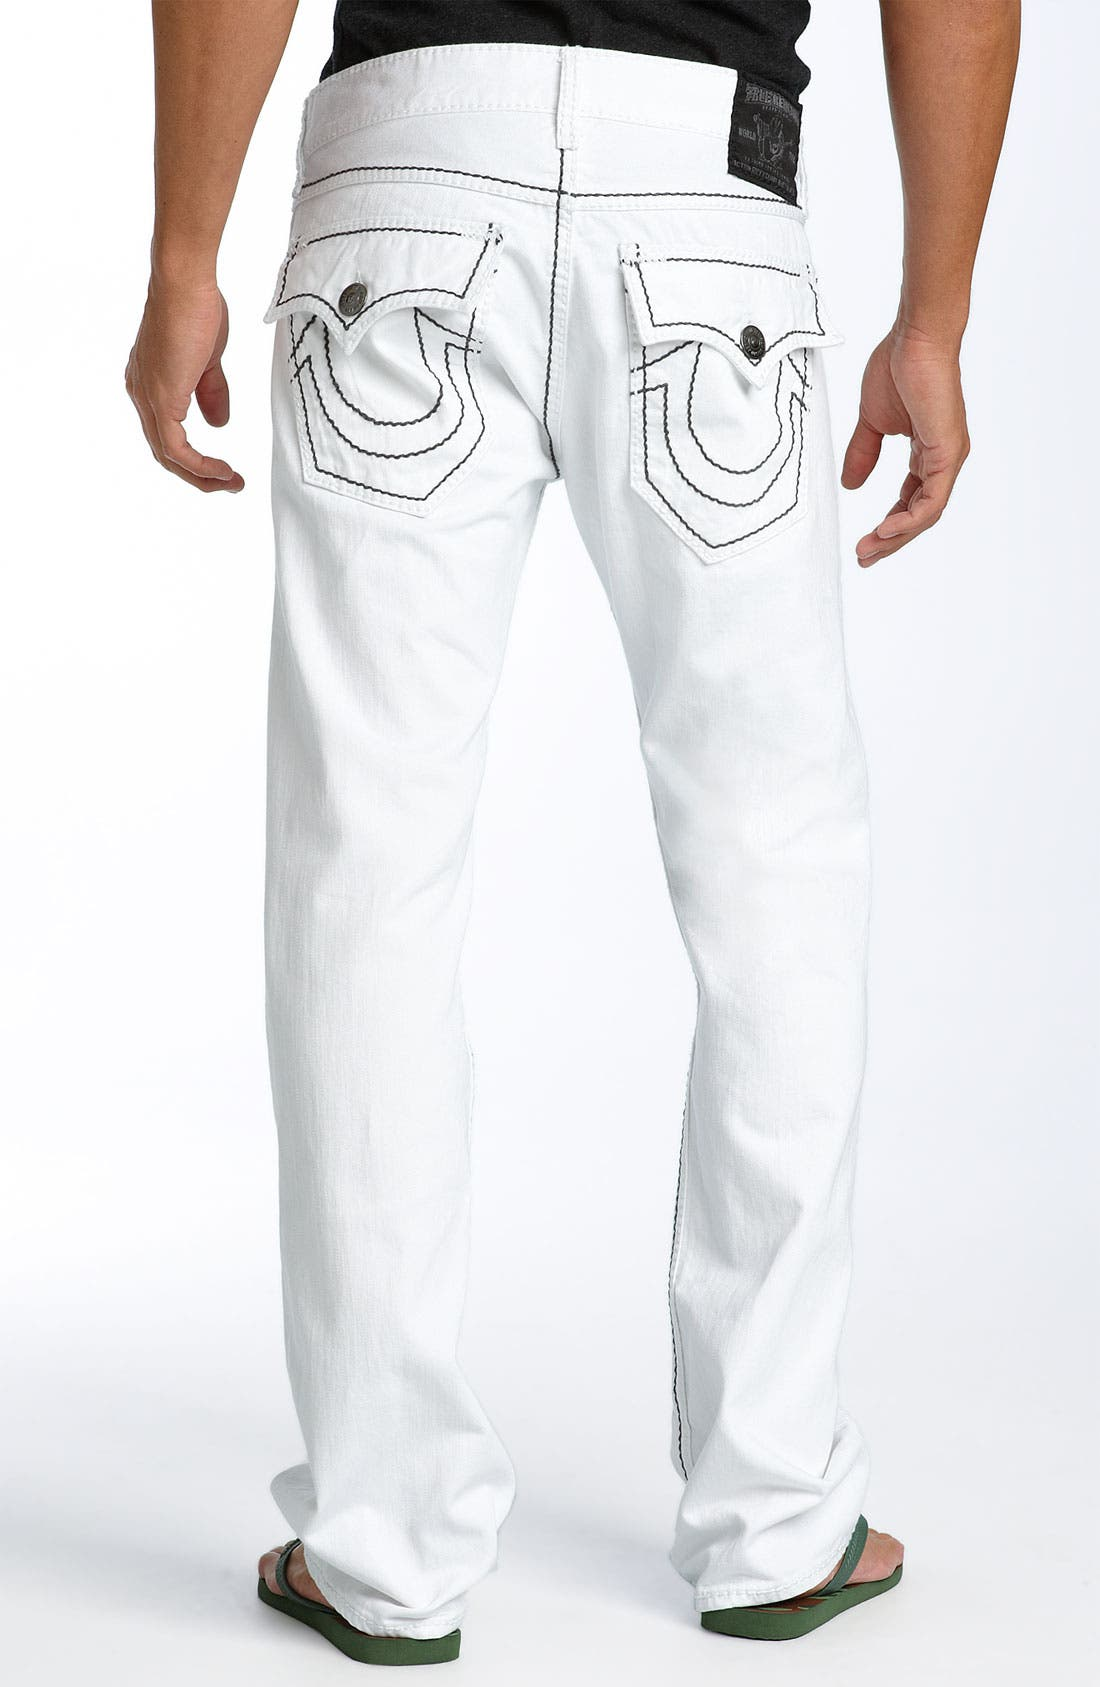 Main Image - True Religion Brand Jeans 'Ricky - Giant Big T' Straight Leg Jeans (Body Rinse Wash)